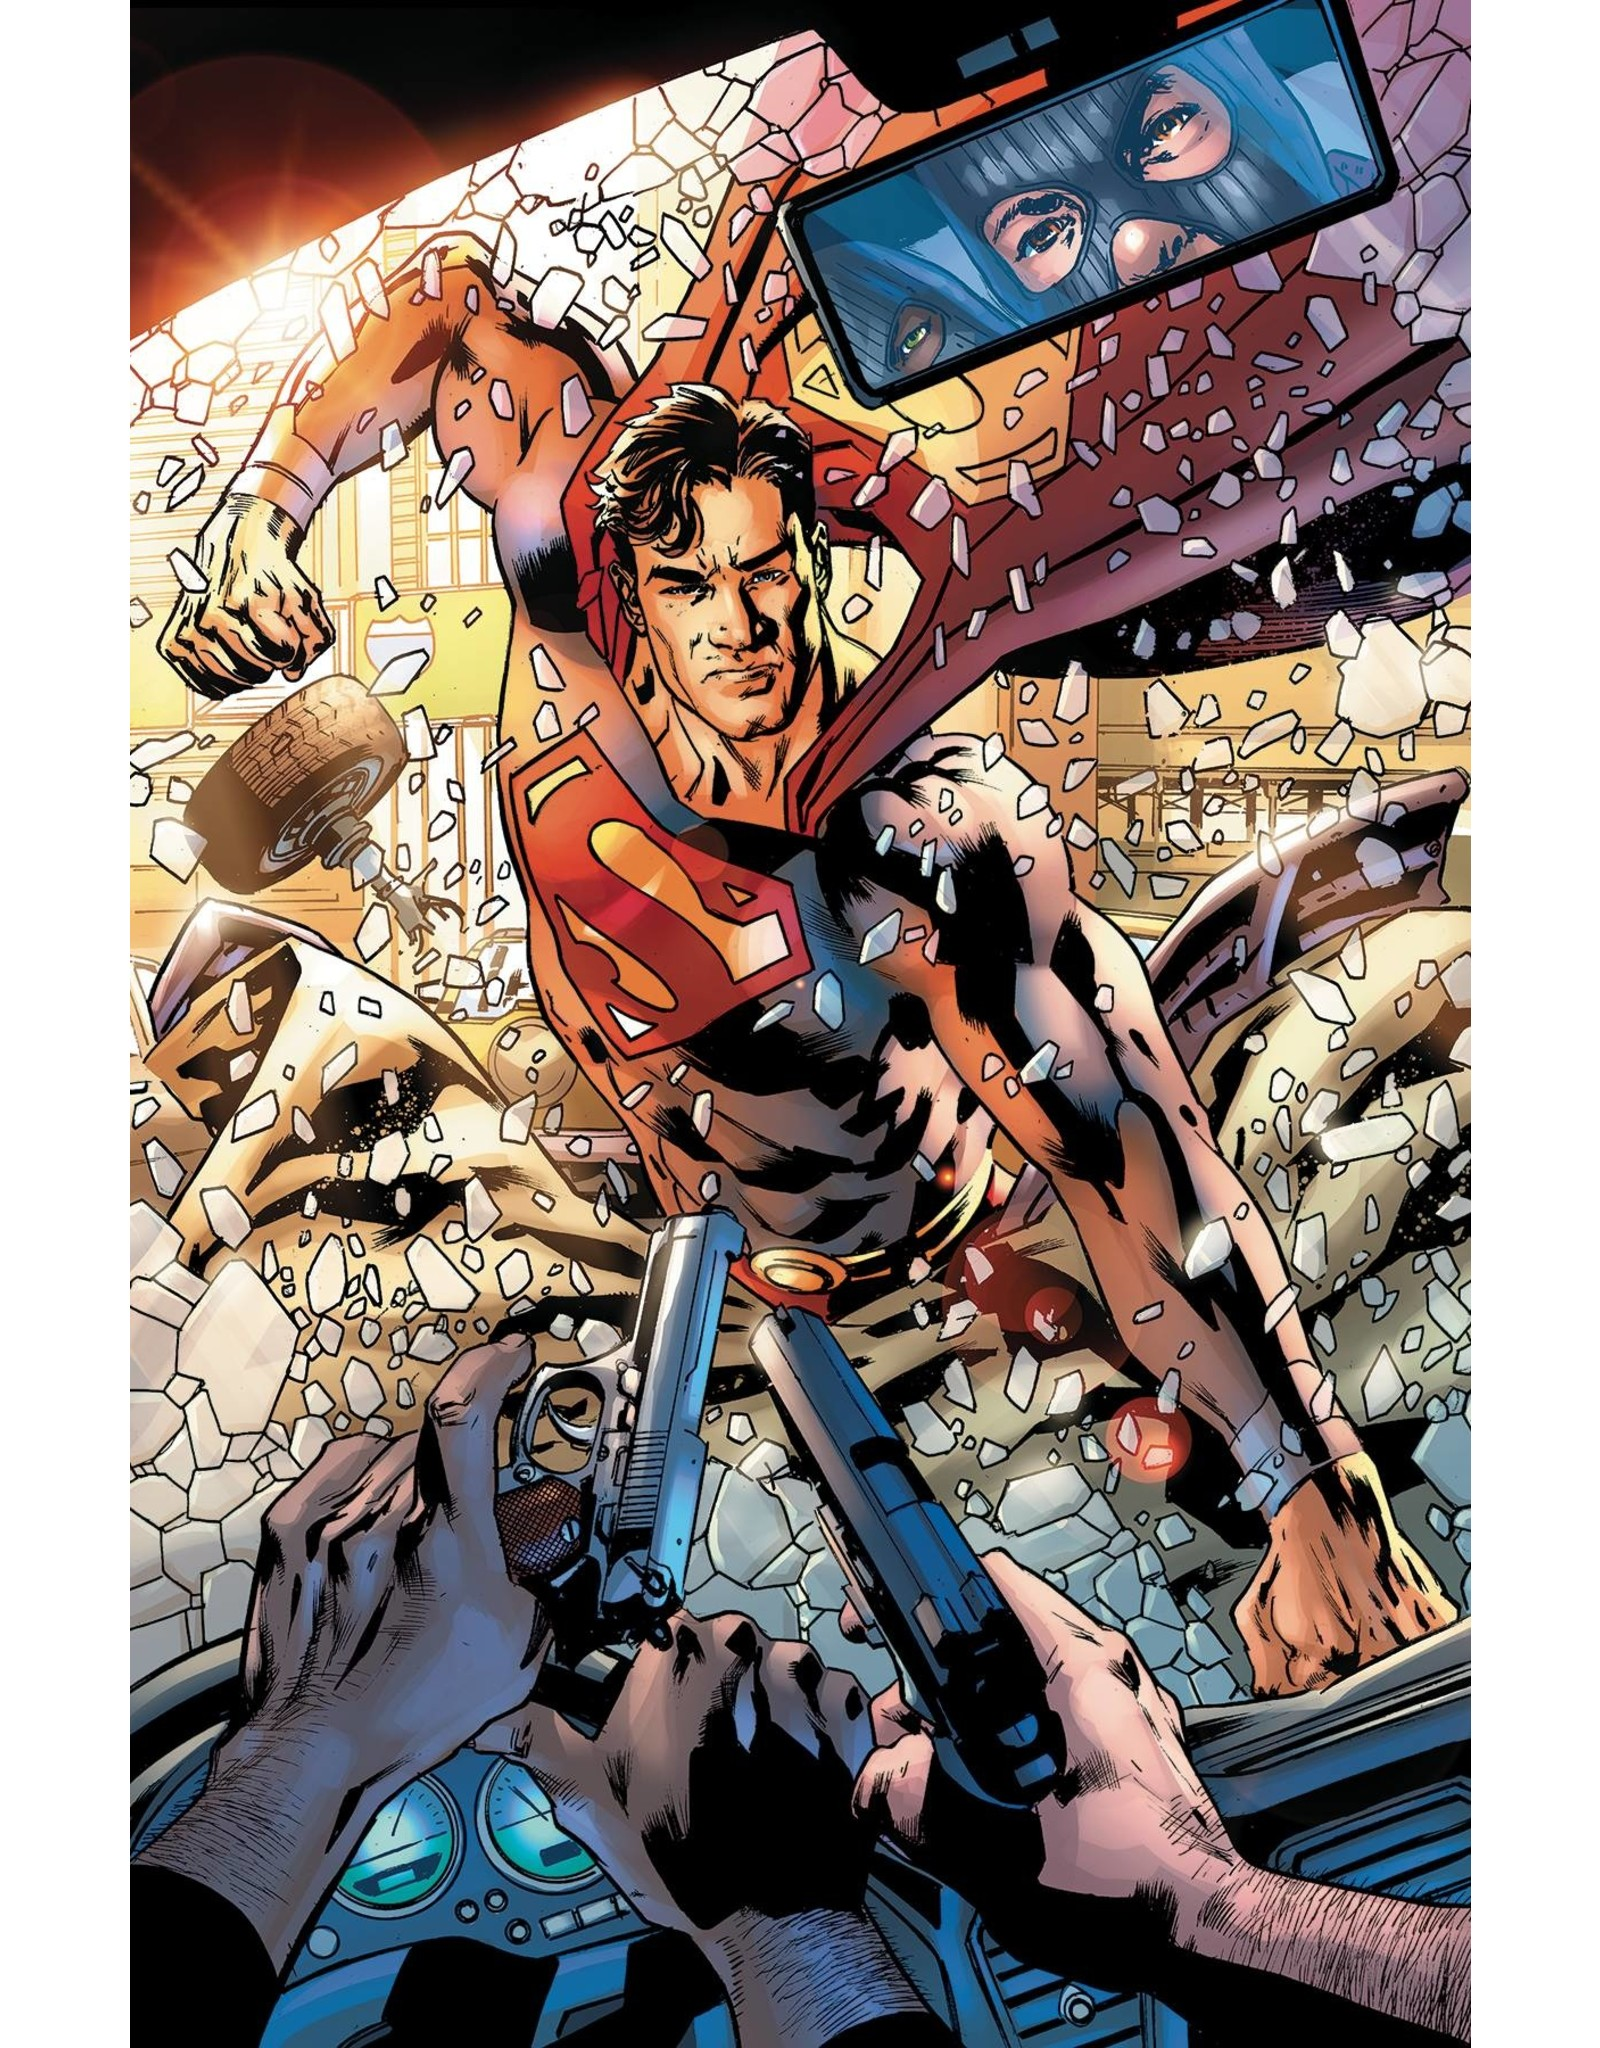 DC COMICS SUPERMAN #25 CVR B BRYAN HITCH VAR